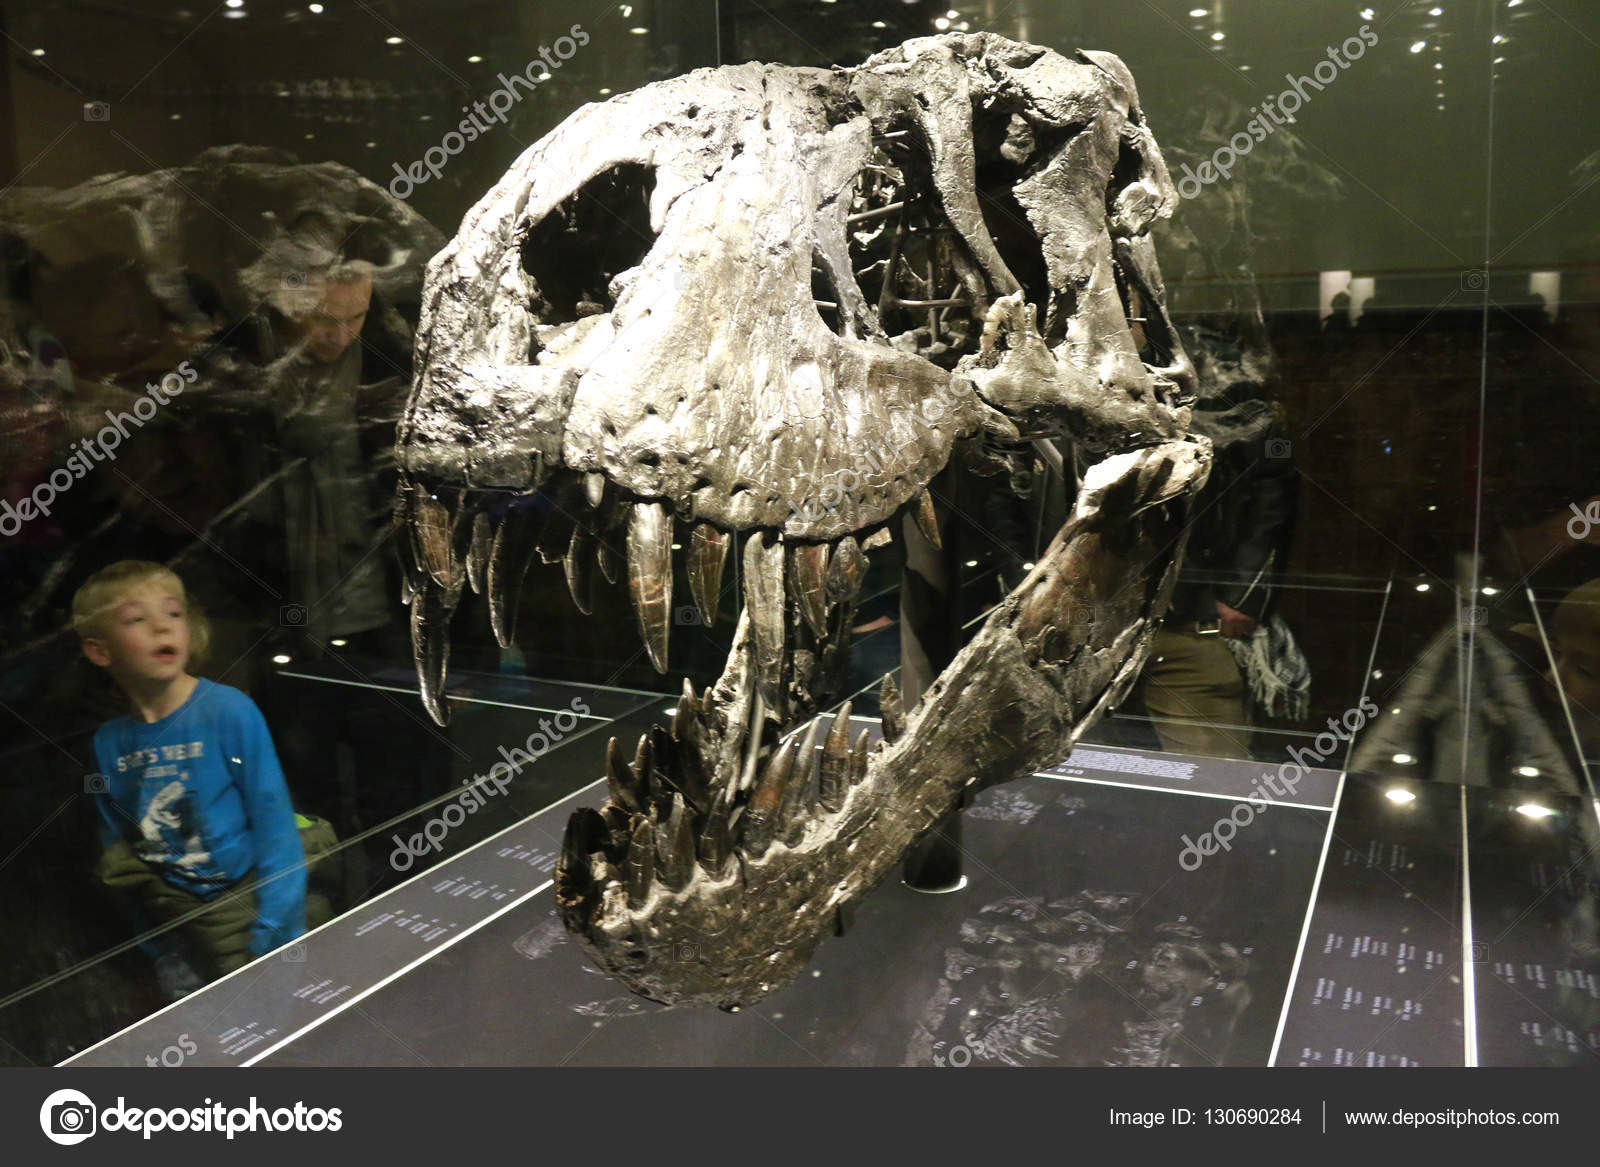 Skeleton of the tyrannus saurus rex tristan otto stock editorial december 2015 berlin the skeleton of the tyrannus saurus rex tristan otto on display at the museum of natural history berlin photo by 360ber thecheapjerseys Gallery